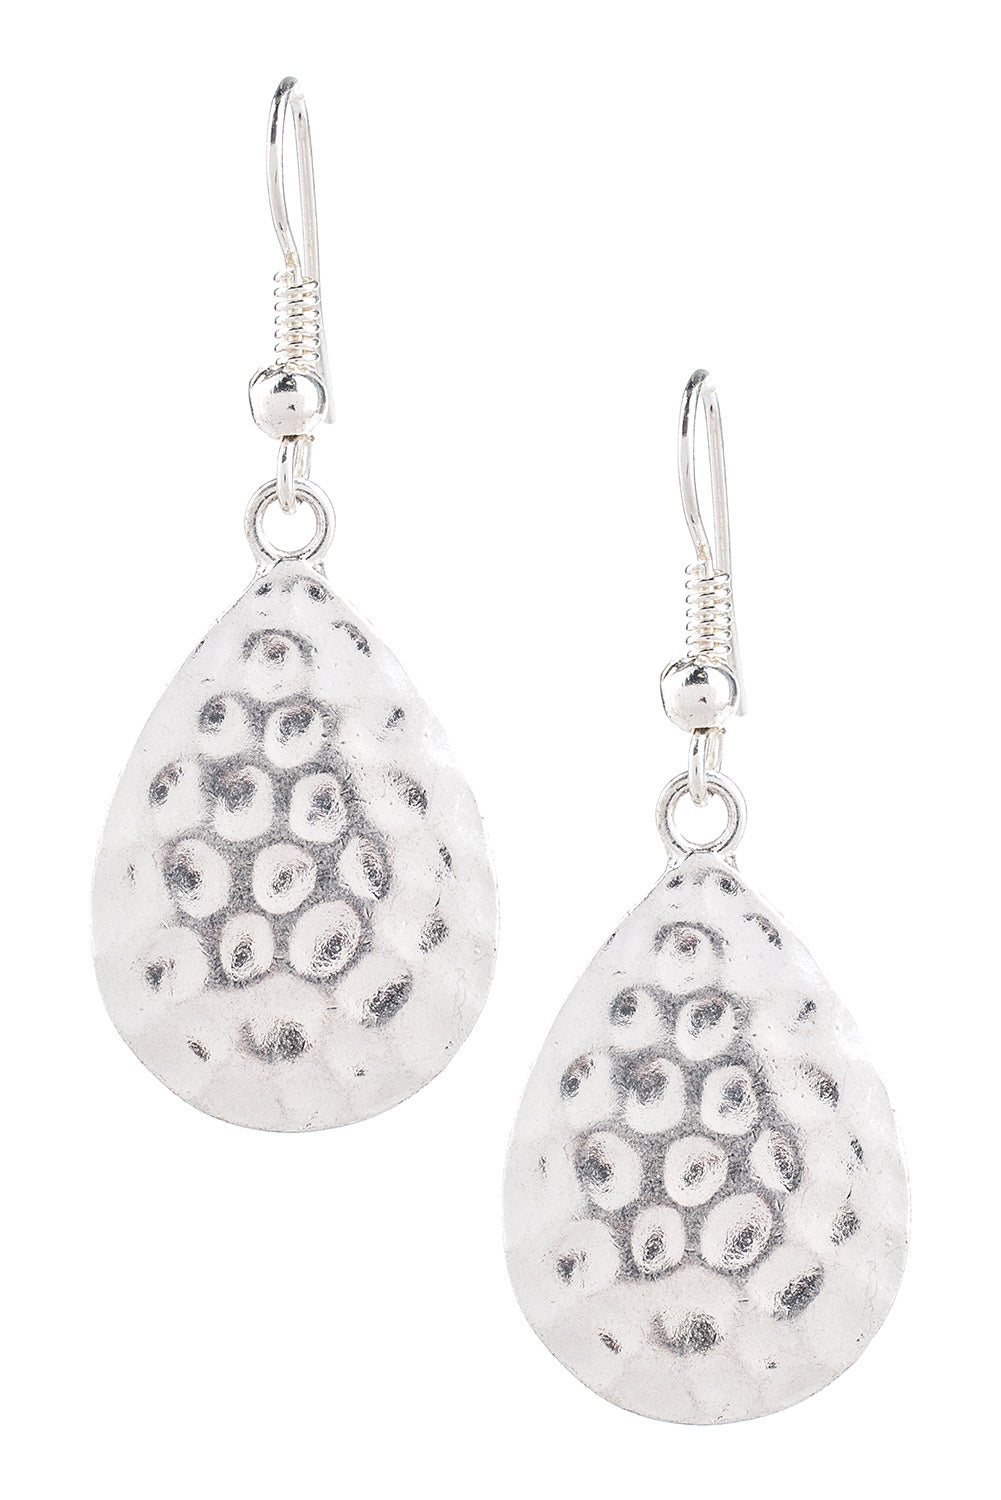 Type 2 Rainfall Earrings